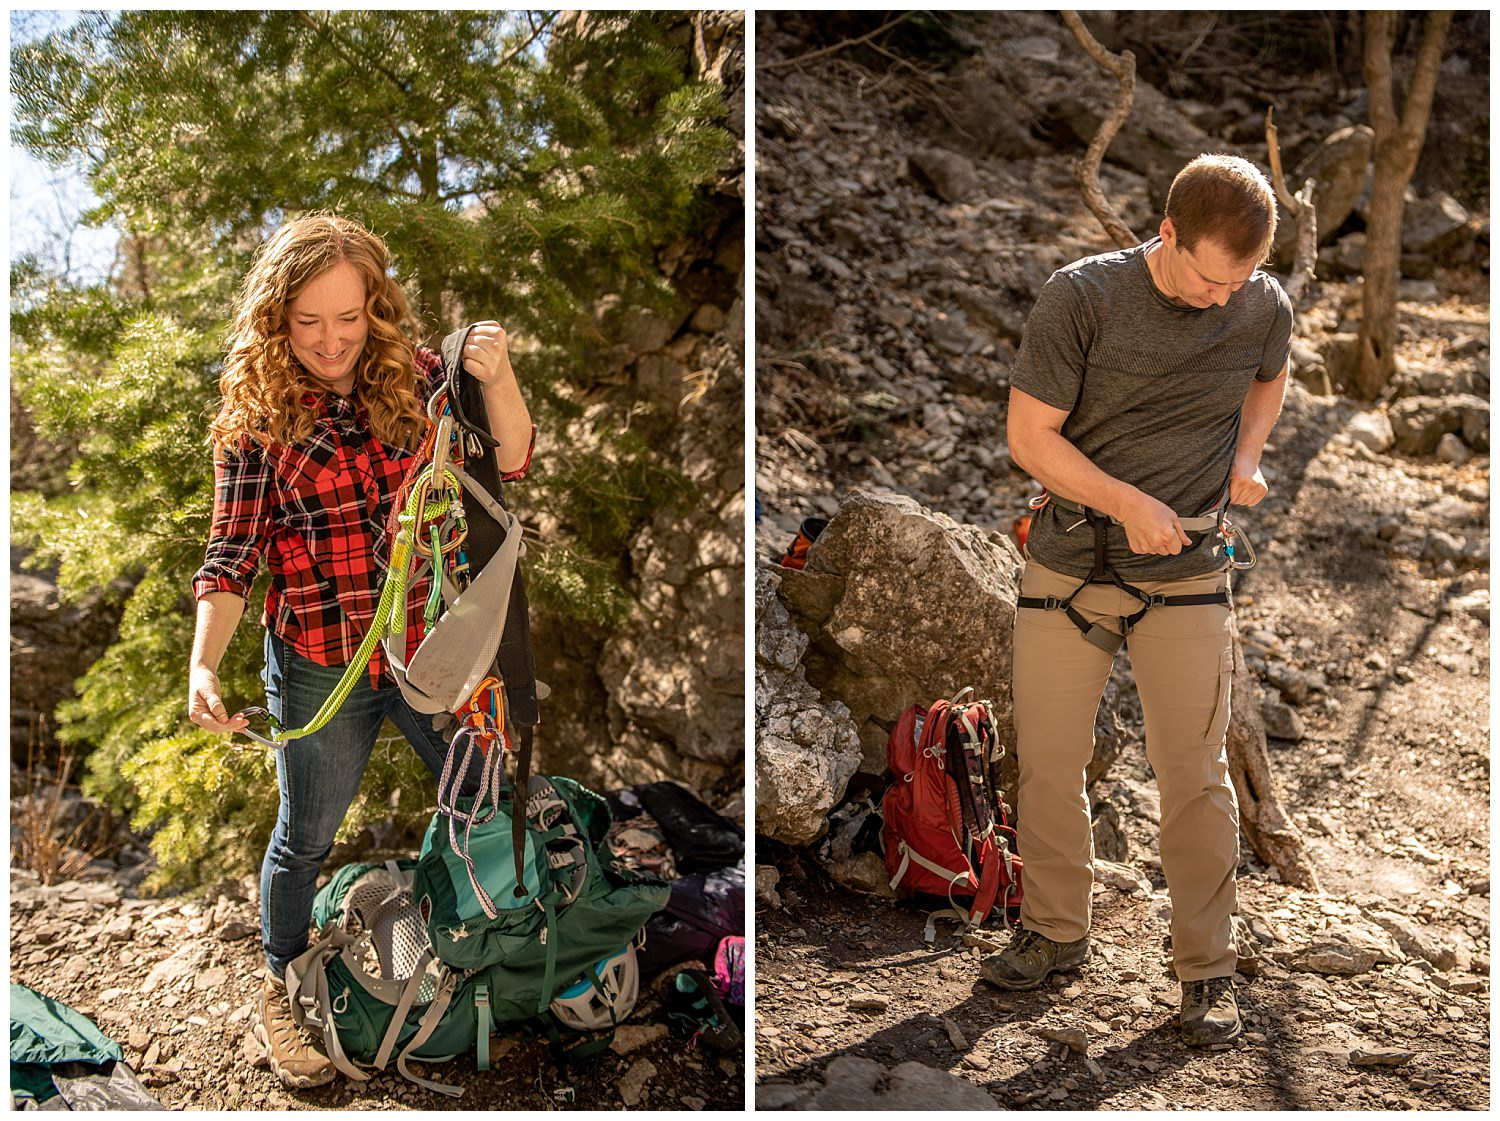 Dan Page Photography, Rock Climbing Engagement Adventure Session, Rock Canyon, Provo (1).jpg